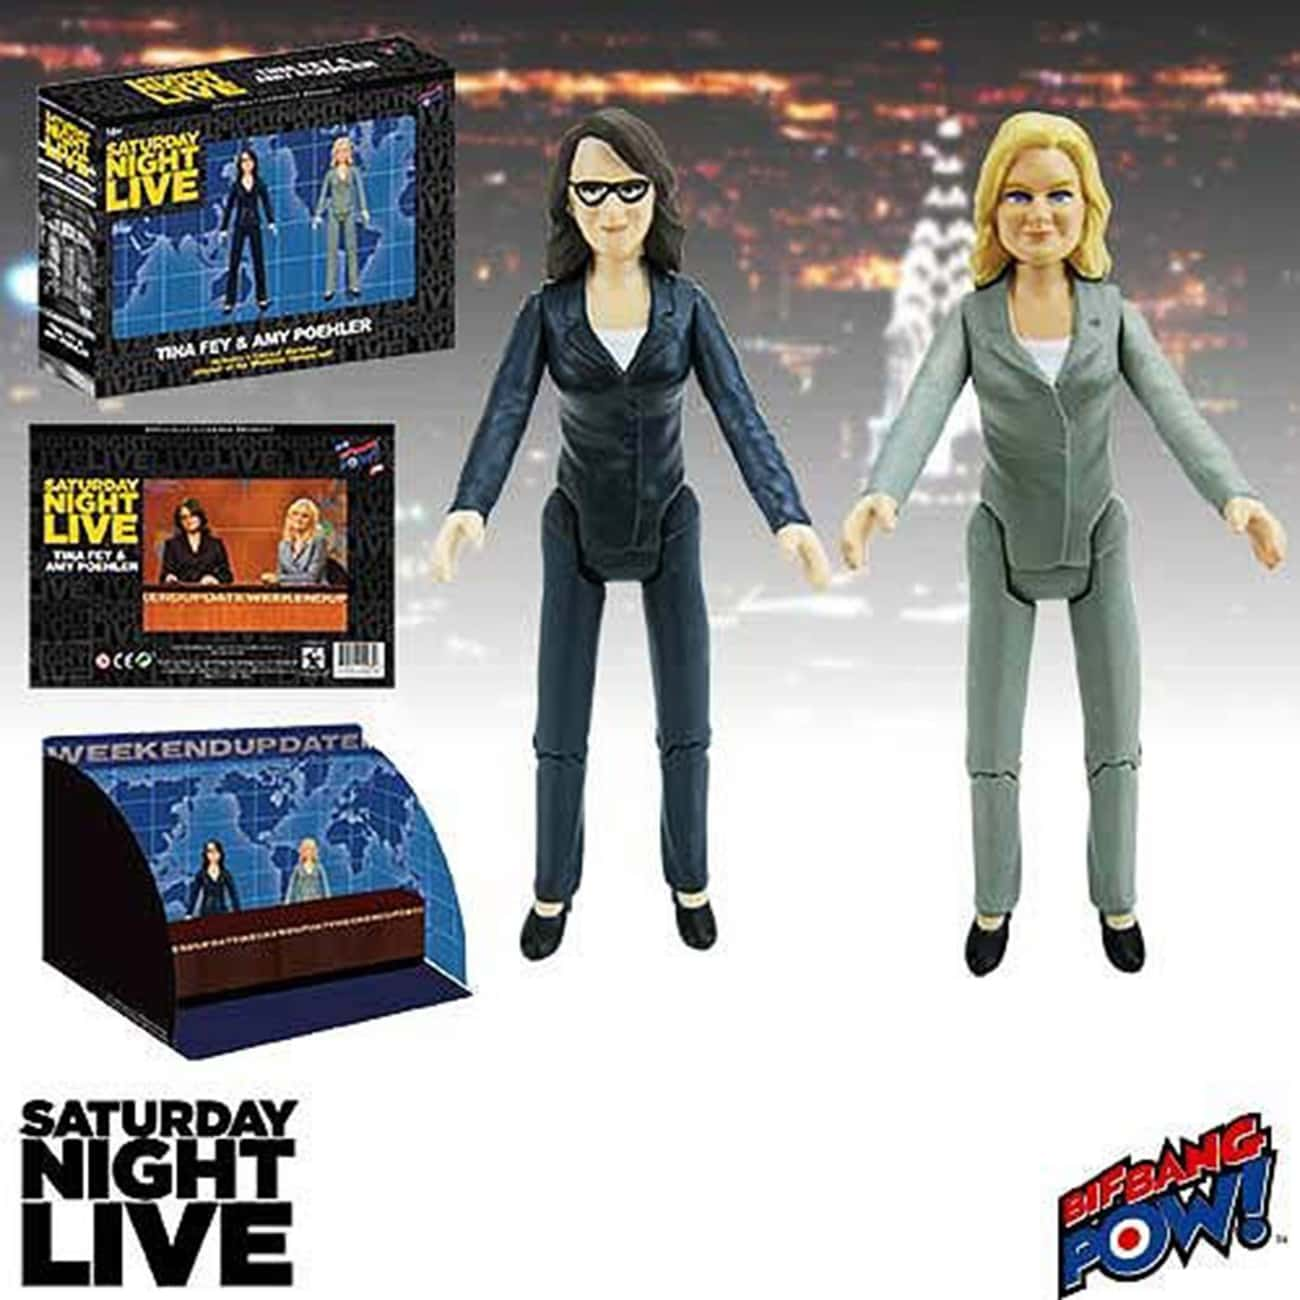 Tina Fey and Amy Poehler Weeke is listed (or ranked) 3 on the list Perfect Gifts for Saturday Night Live Fans